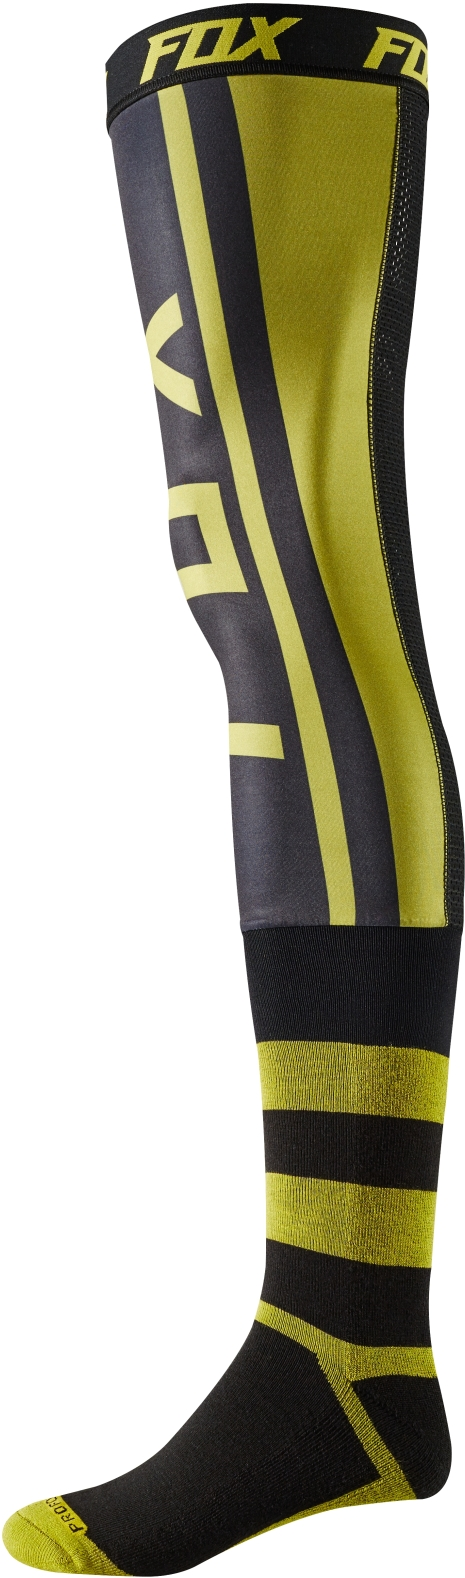 CALZE CROSS PROFORMA KNEE BRACE SOCK - PREEST